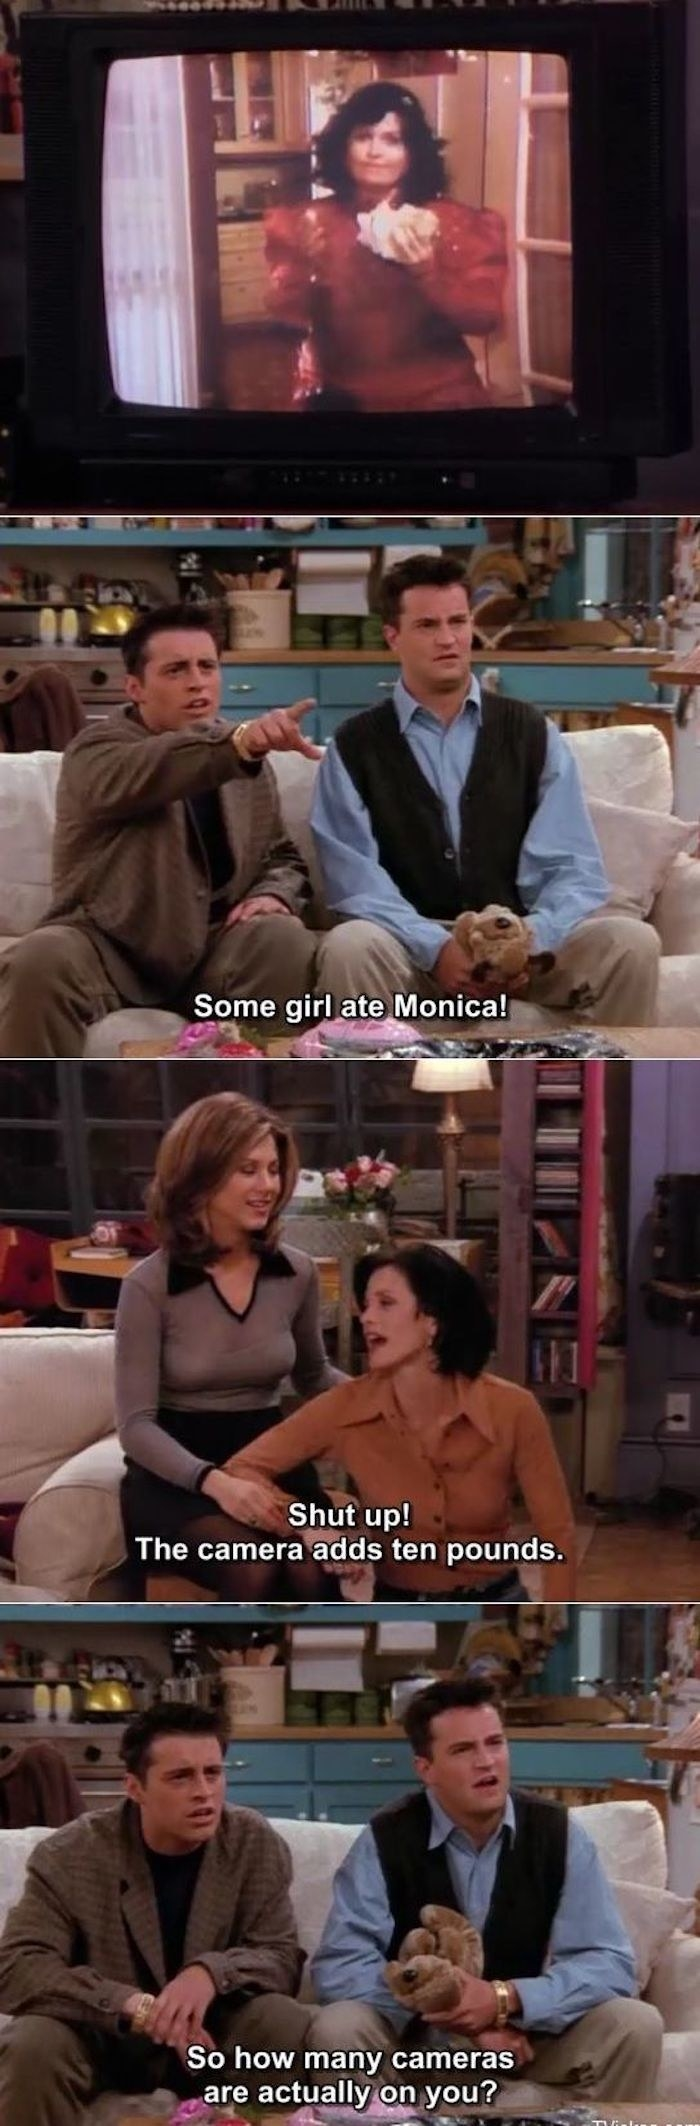 "Monica telling Joey and Chandler the camera adds 10 pounds after they made fun of her weight as a high schooler; Chandler's response: ""So how many cameras are actually on you?"""